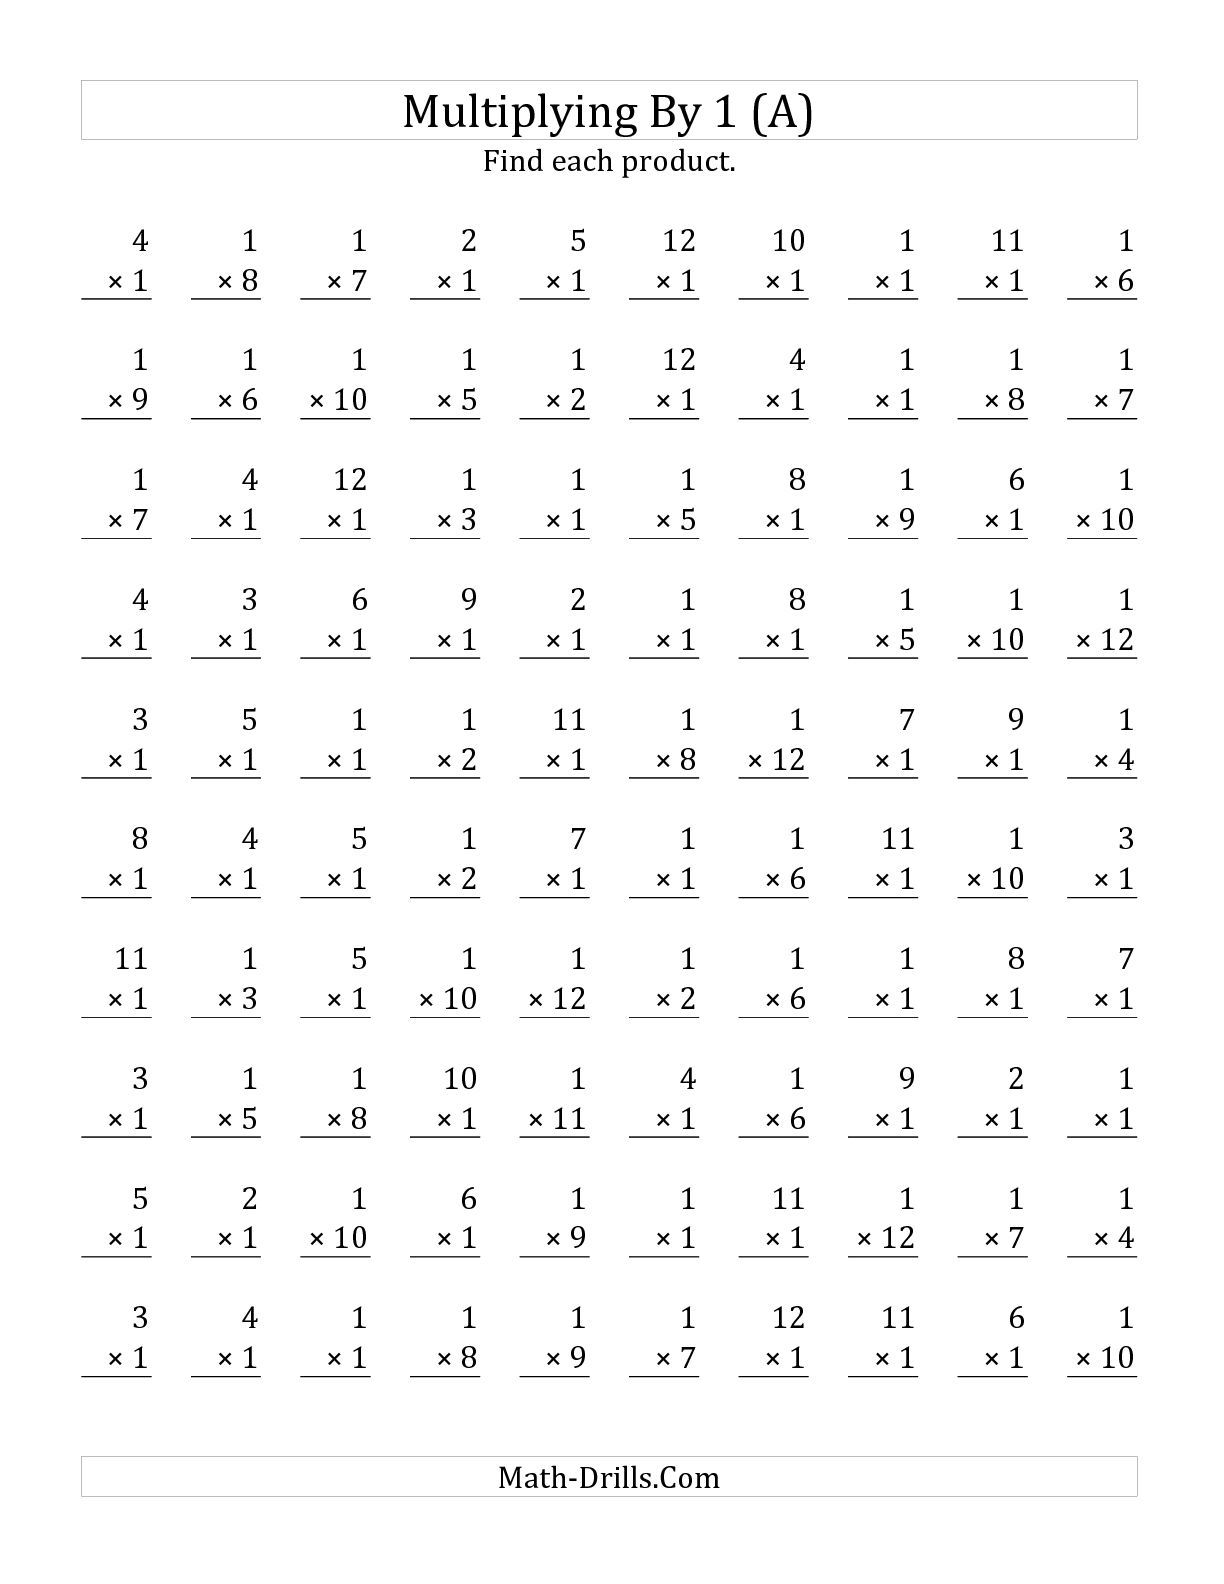 The Multiplying 1 To 12 By 1 A Math Worksheet From The Multiplication Worksheet Page At Math